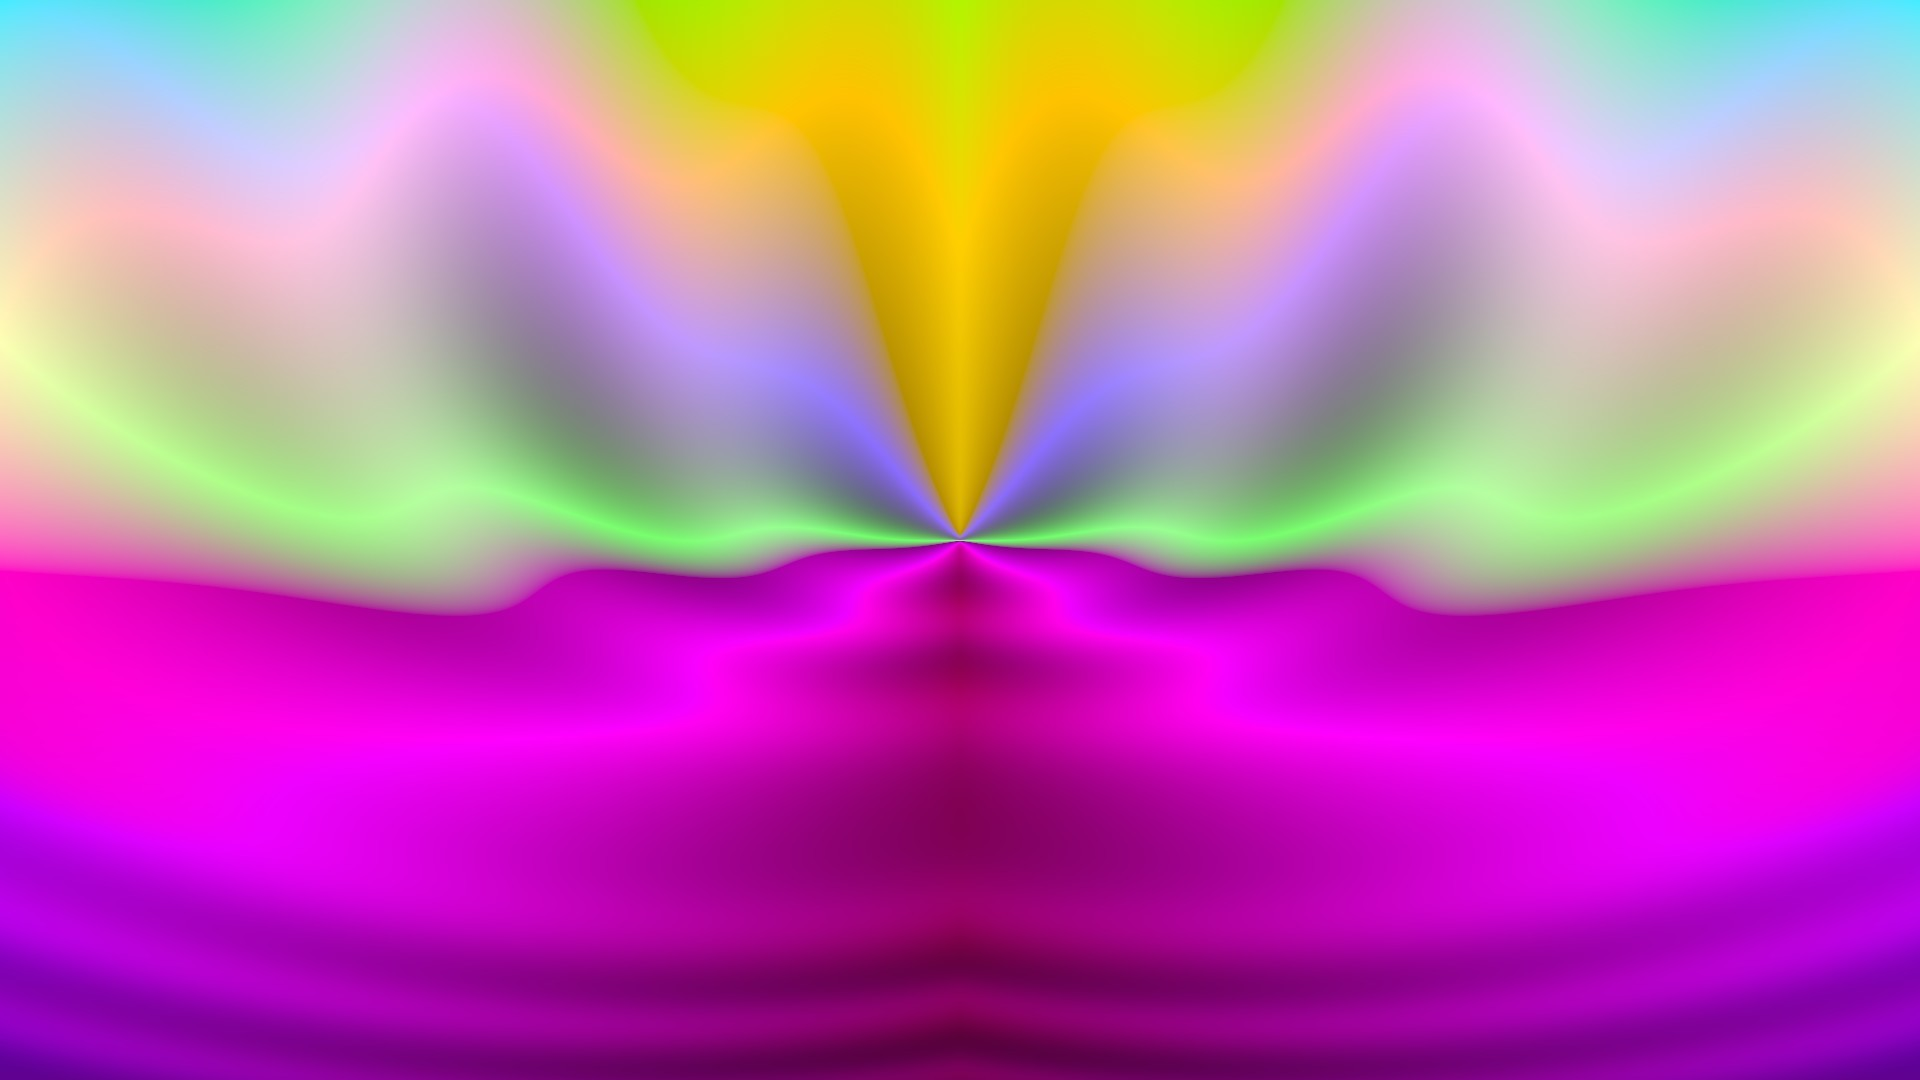 Abstract Color Wallpaper 45235